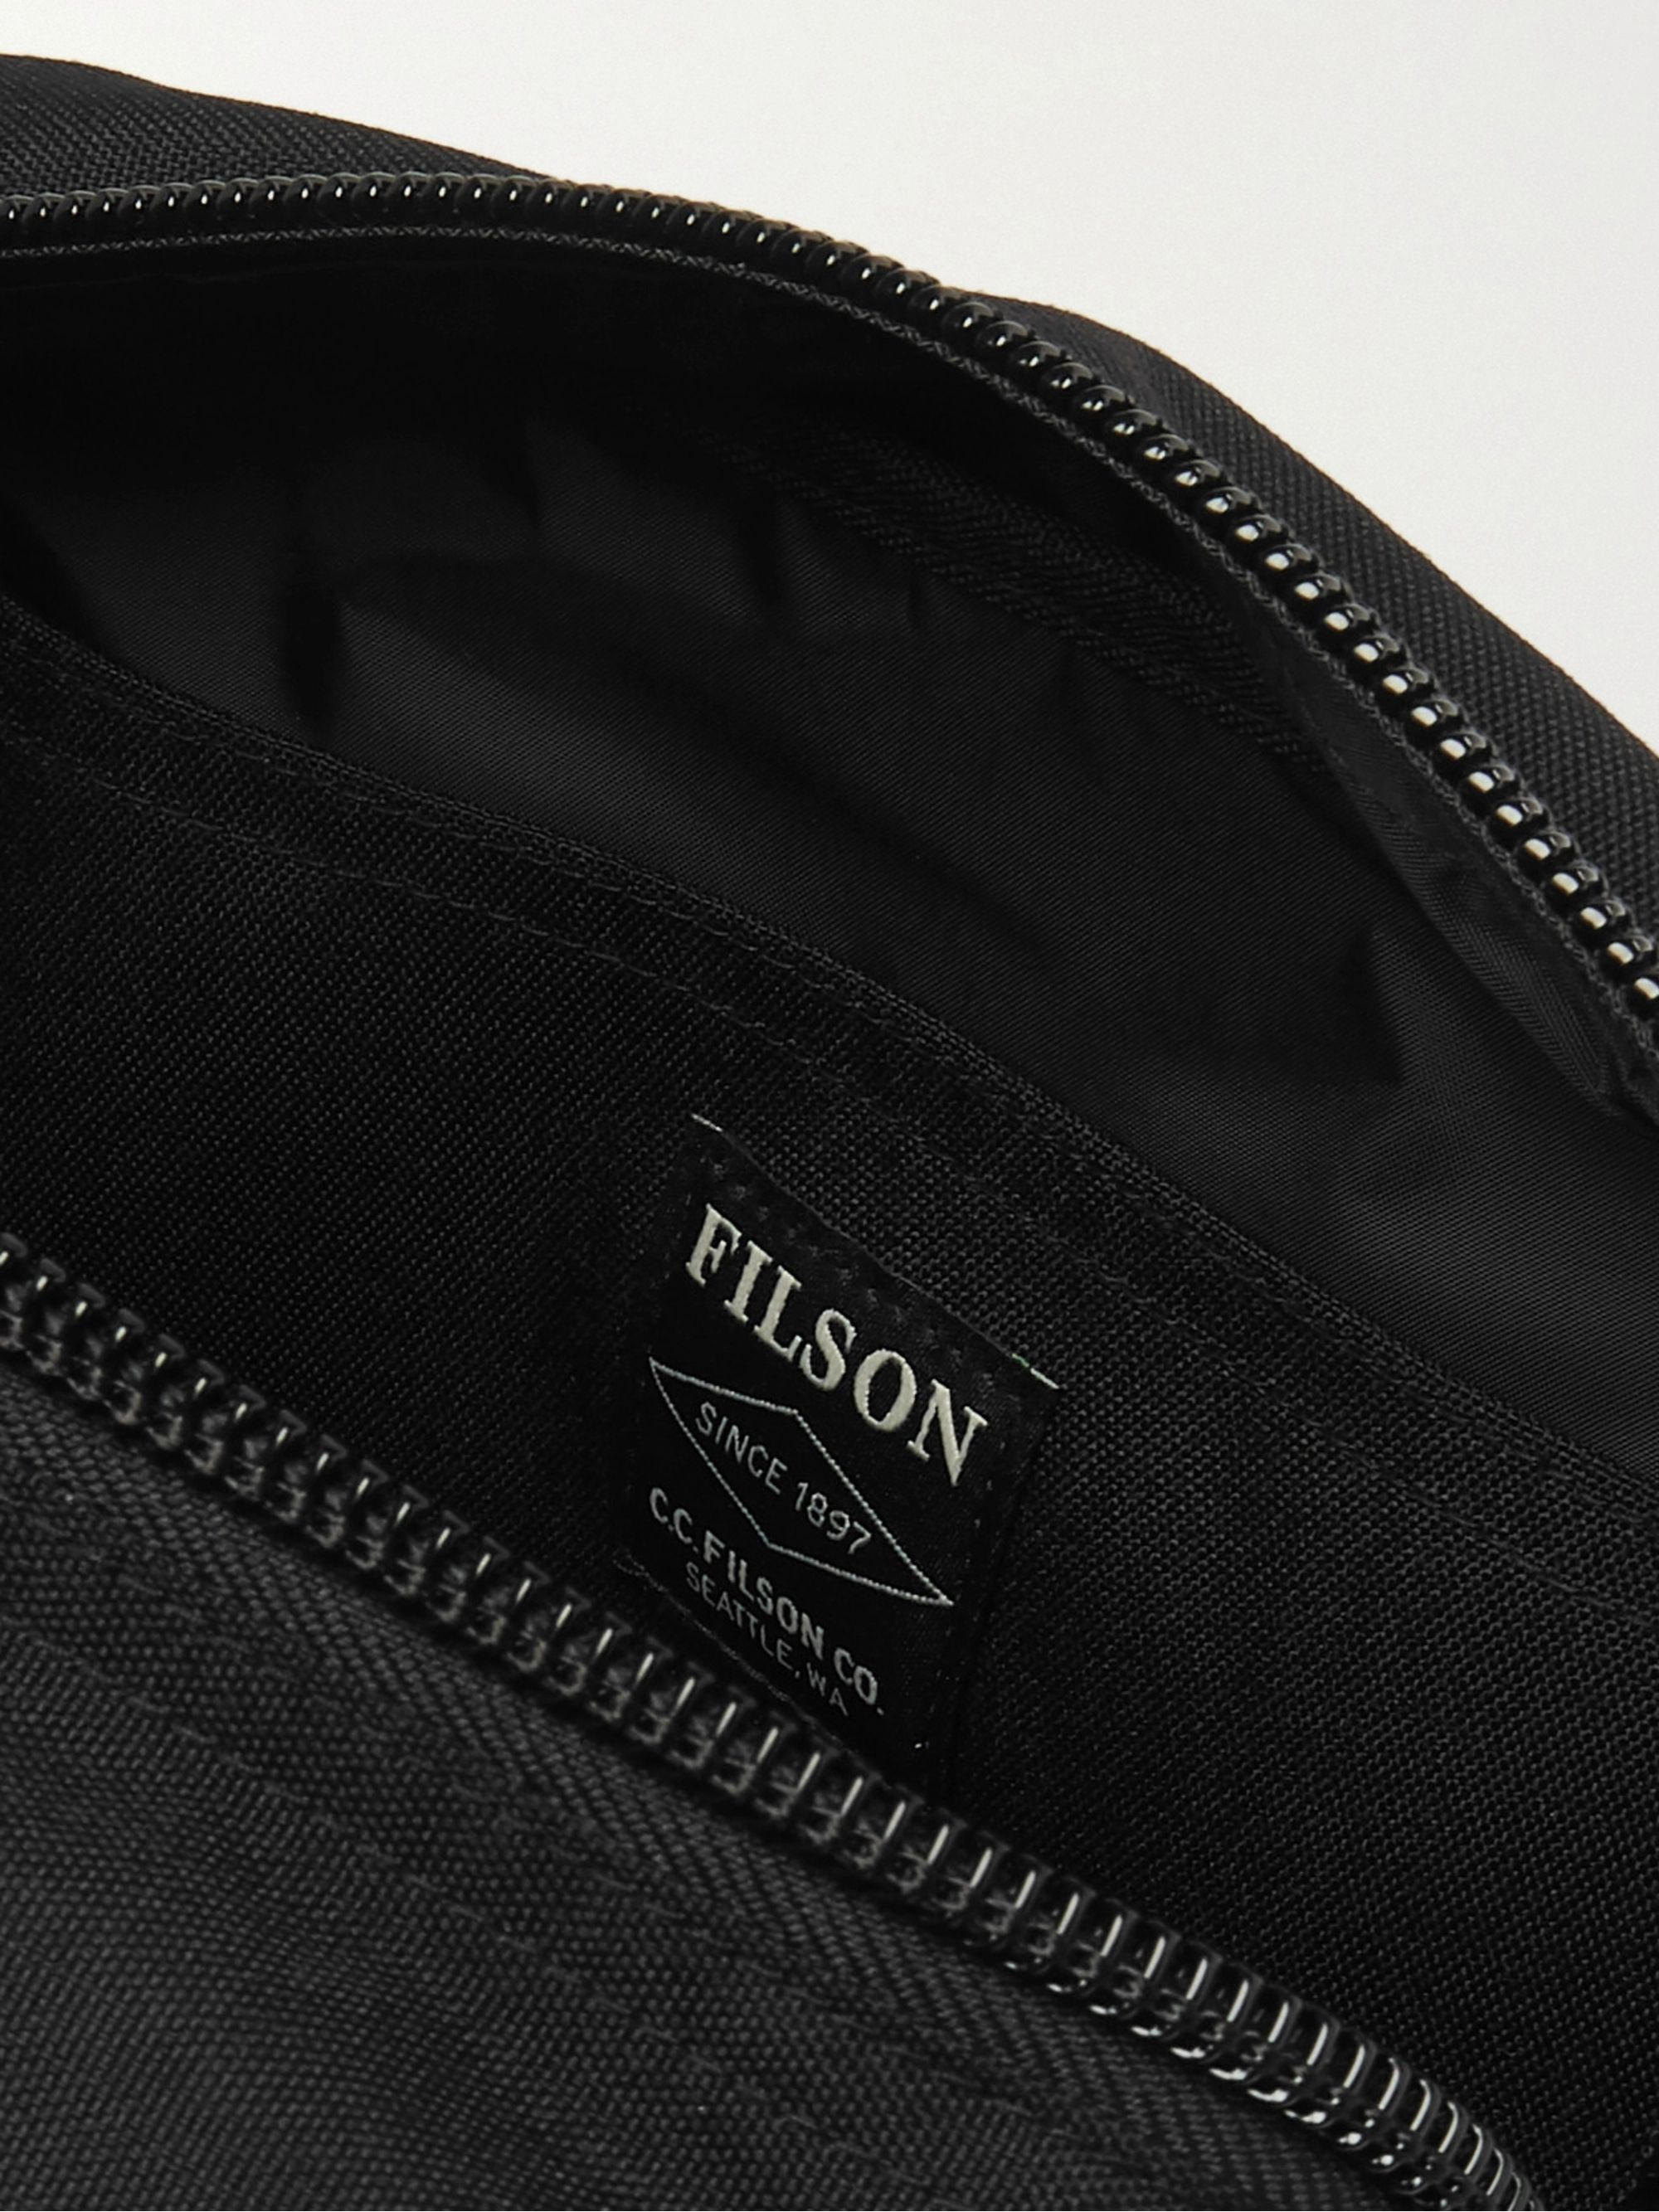 Filson Nylon Wash Bag